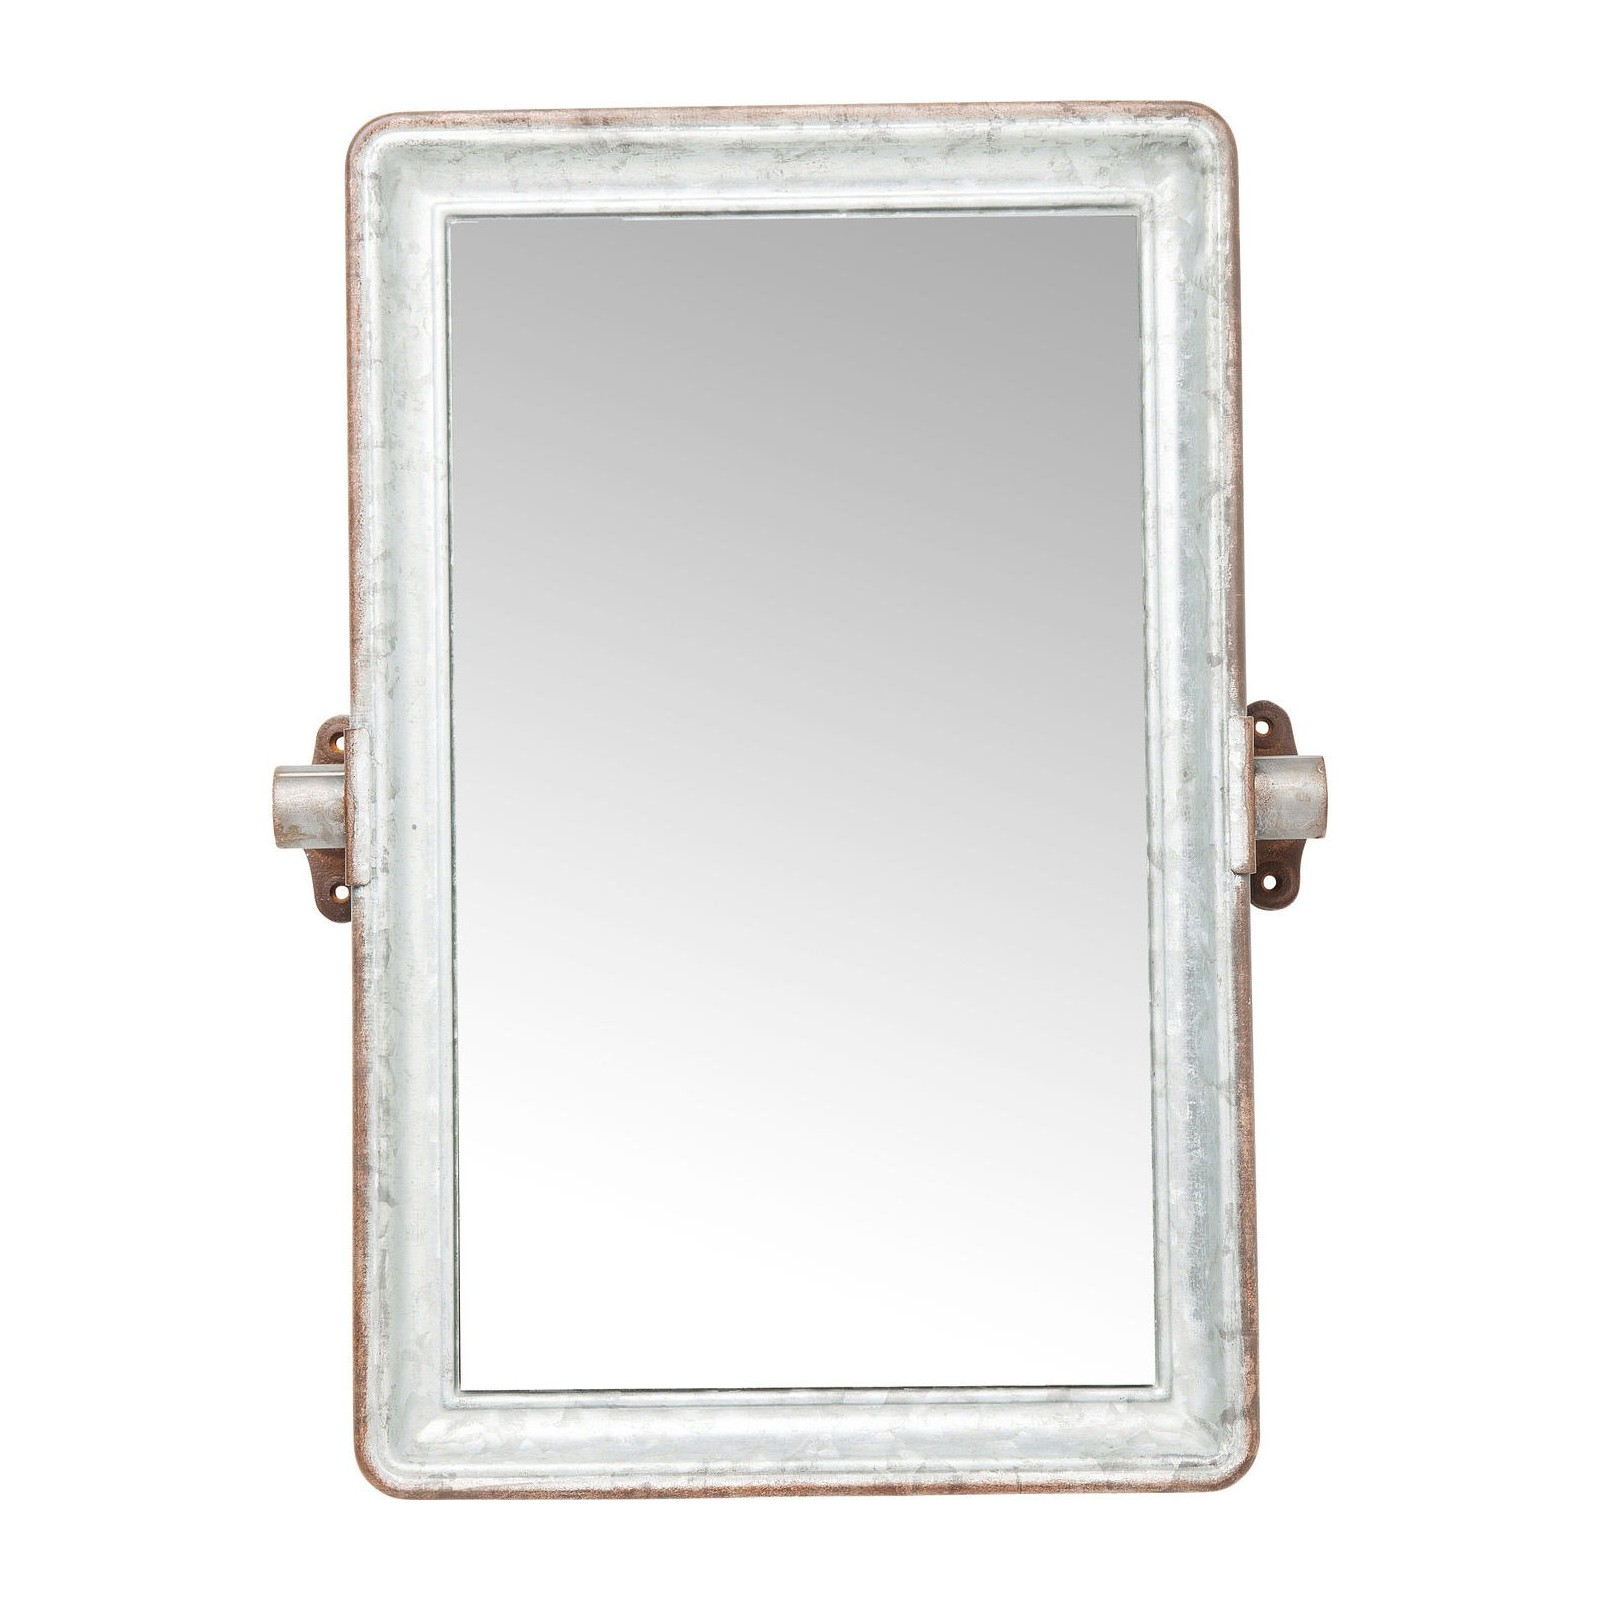 Miroir industriel rectangulaire 51x40cm tilt kare design for Miroir largeur 40 cm